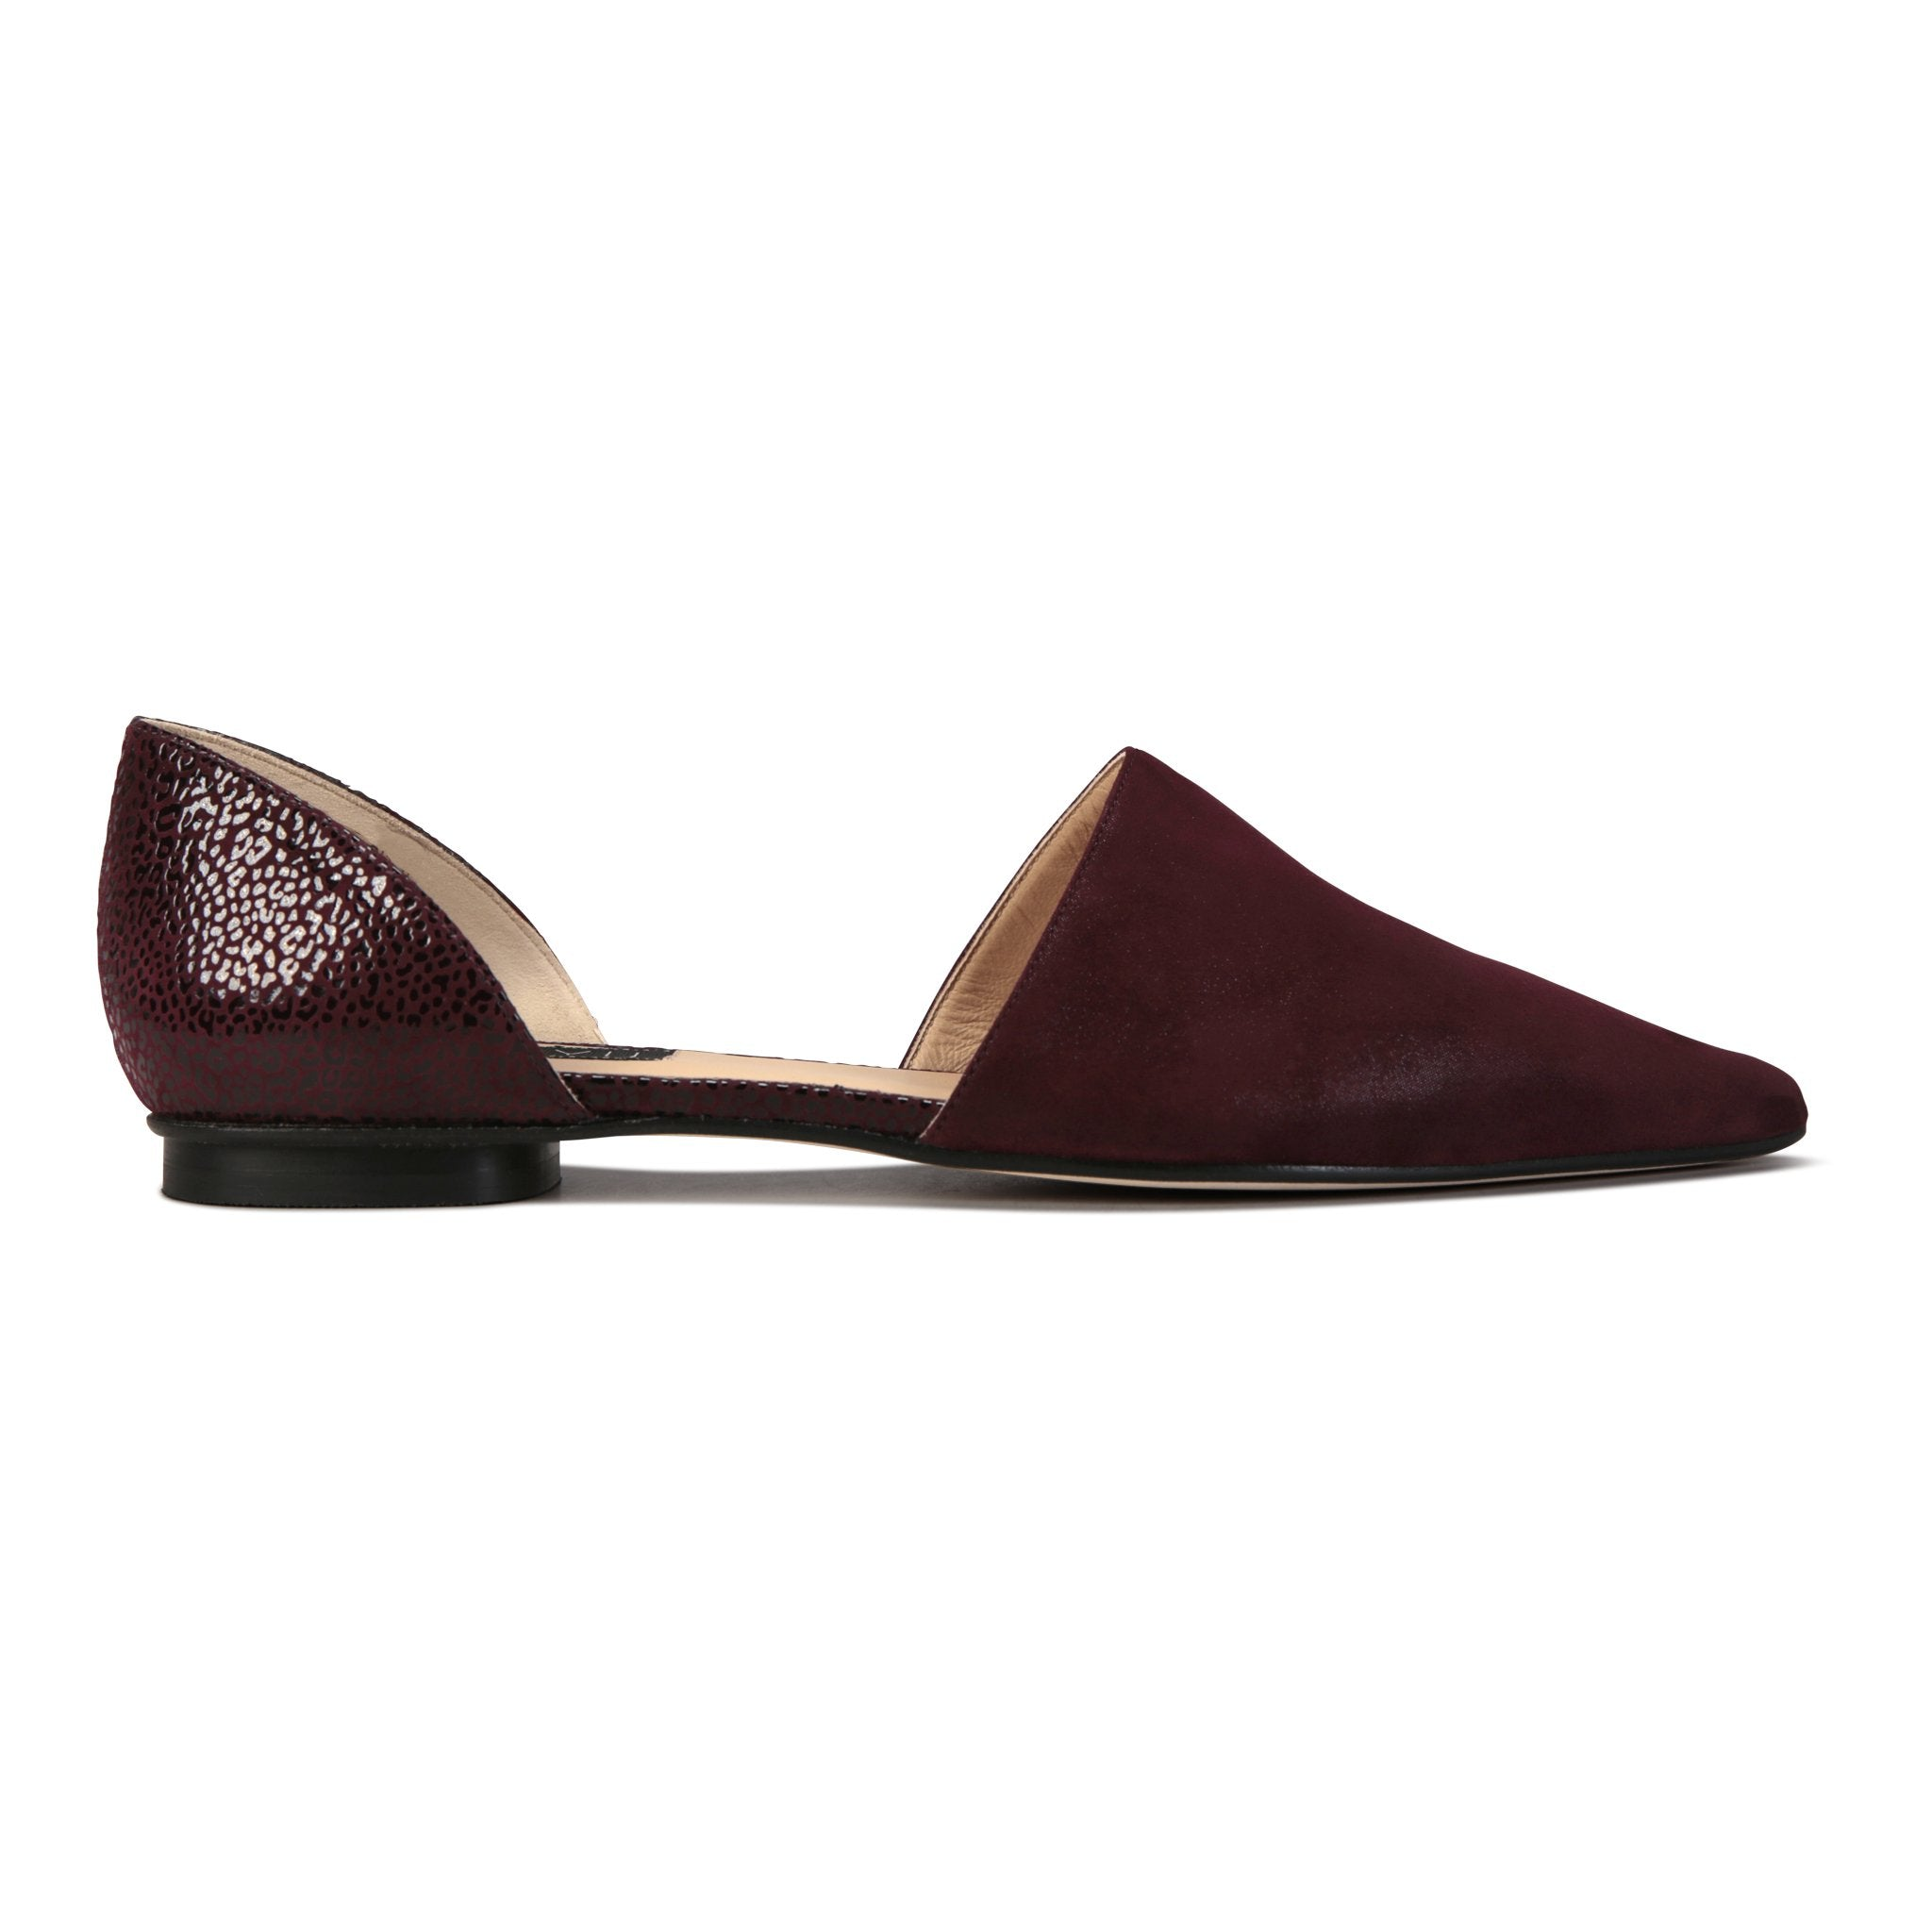 ELBA - Hydra Garnet + Savannah, VIAJIYU - Women's Hand Made Sustainable Luxury Shoes. Made in Italy. Made to Order.